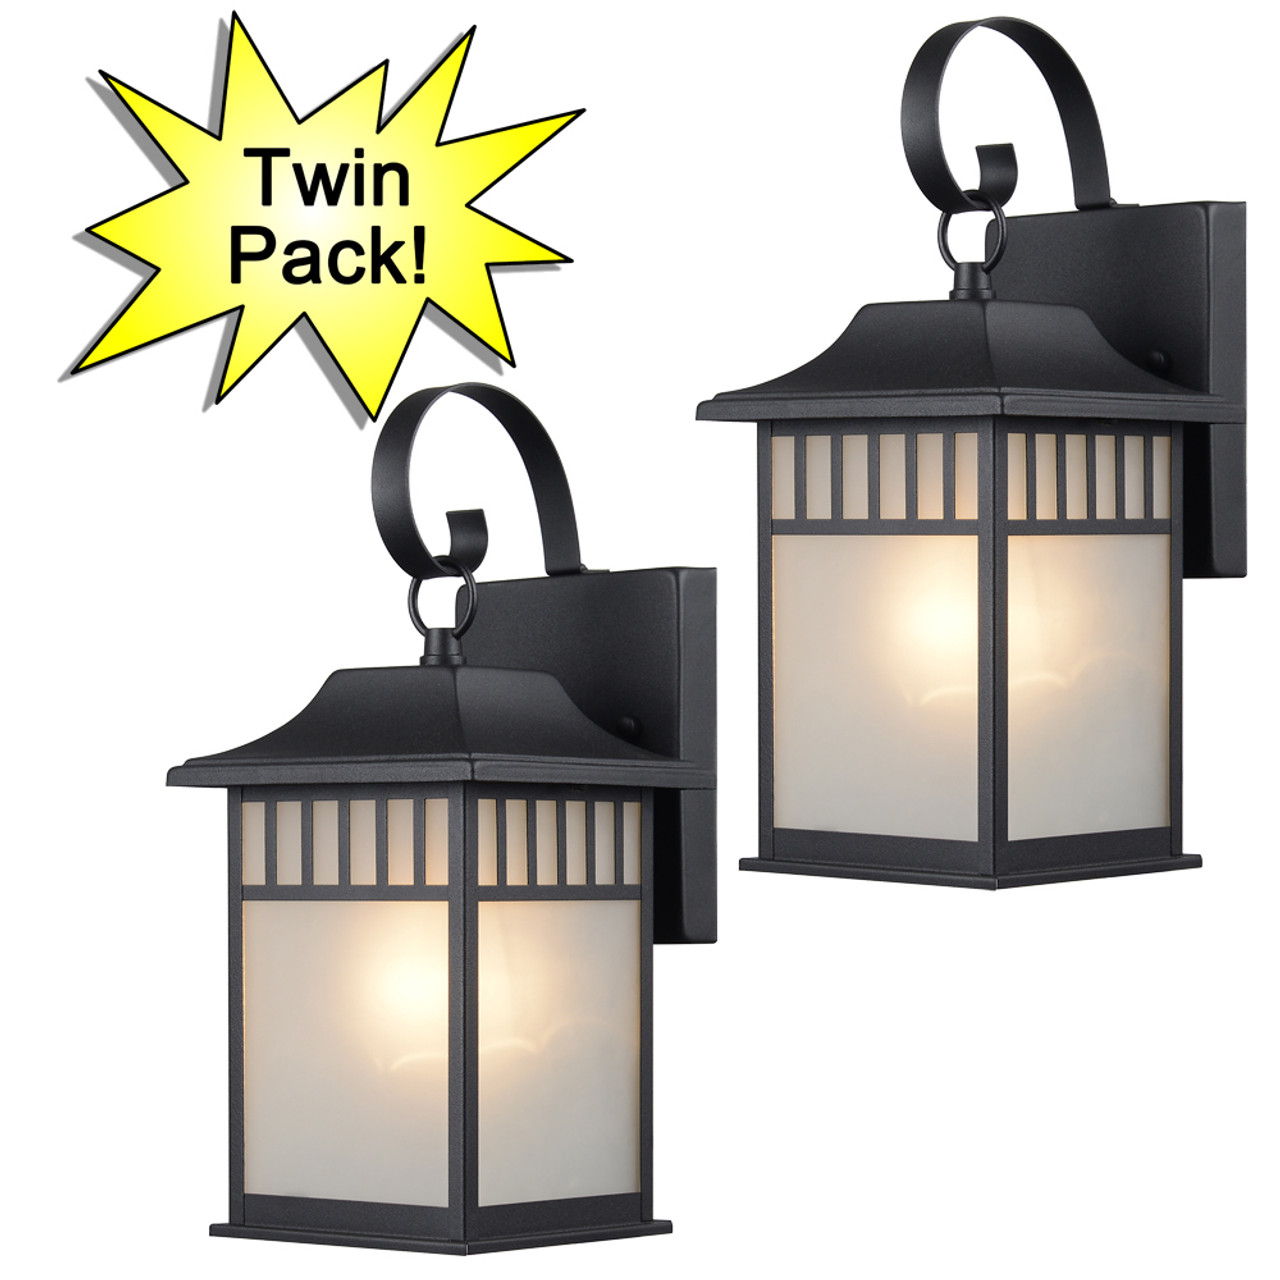 Designers impressions black outdoor patio porch exterior light fixtures twin pack 73476